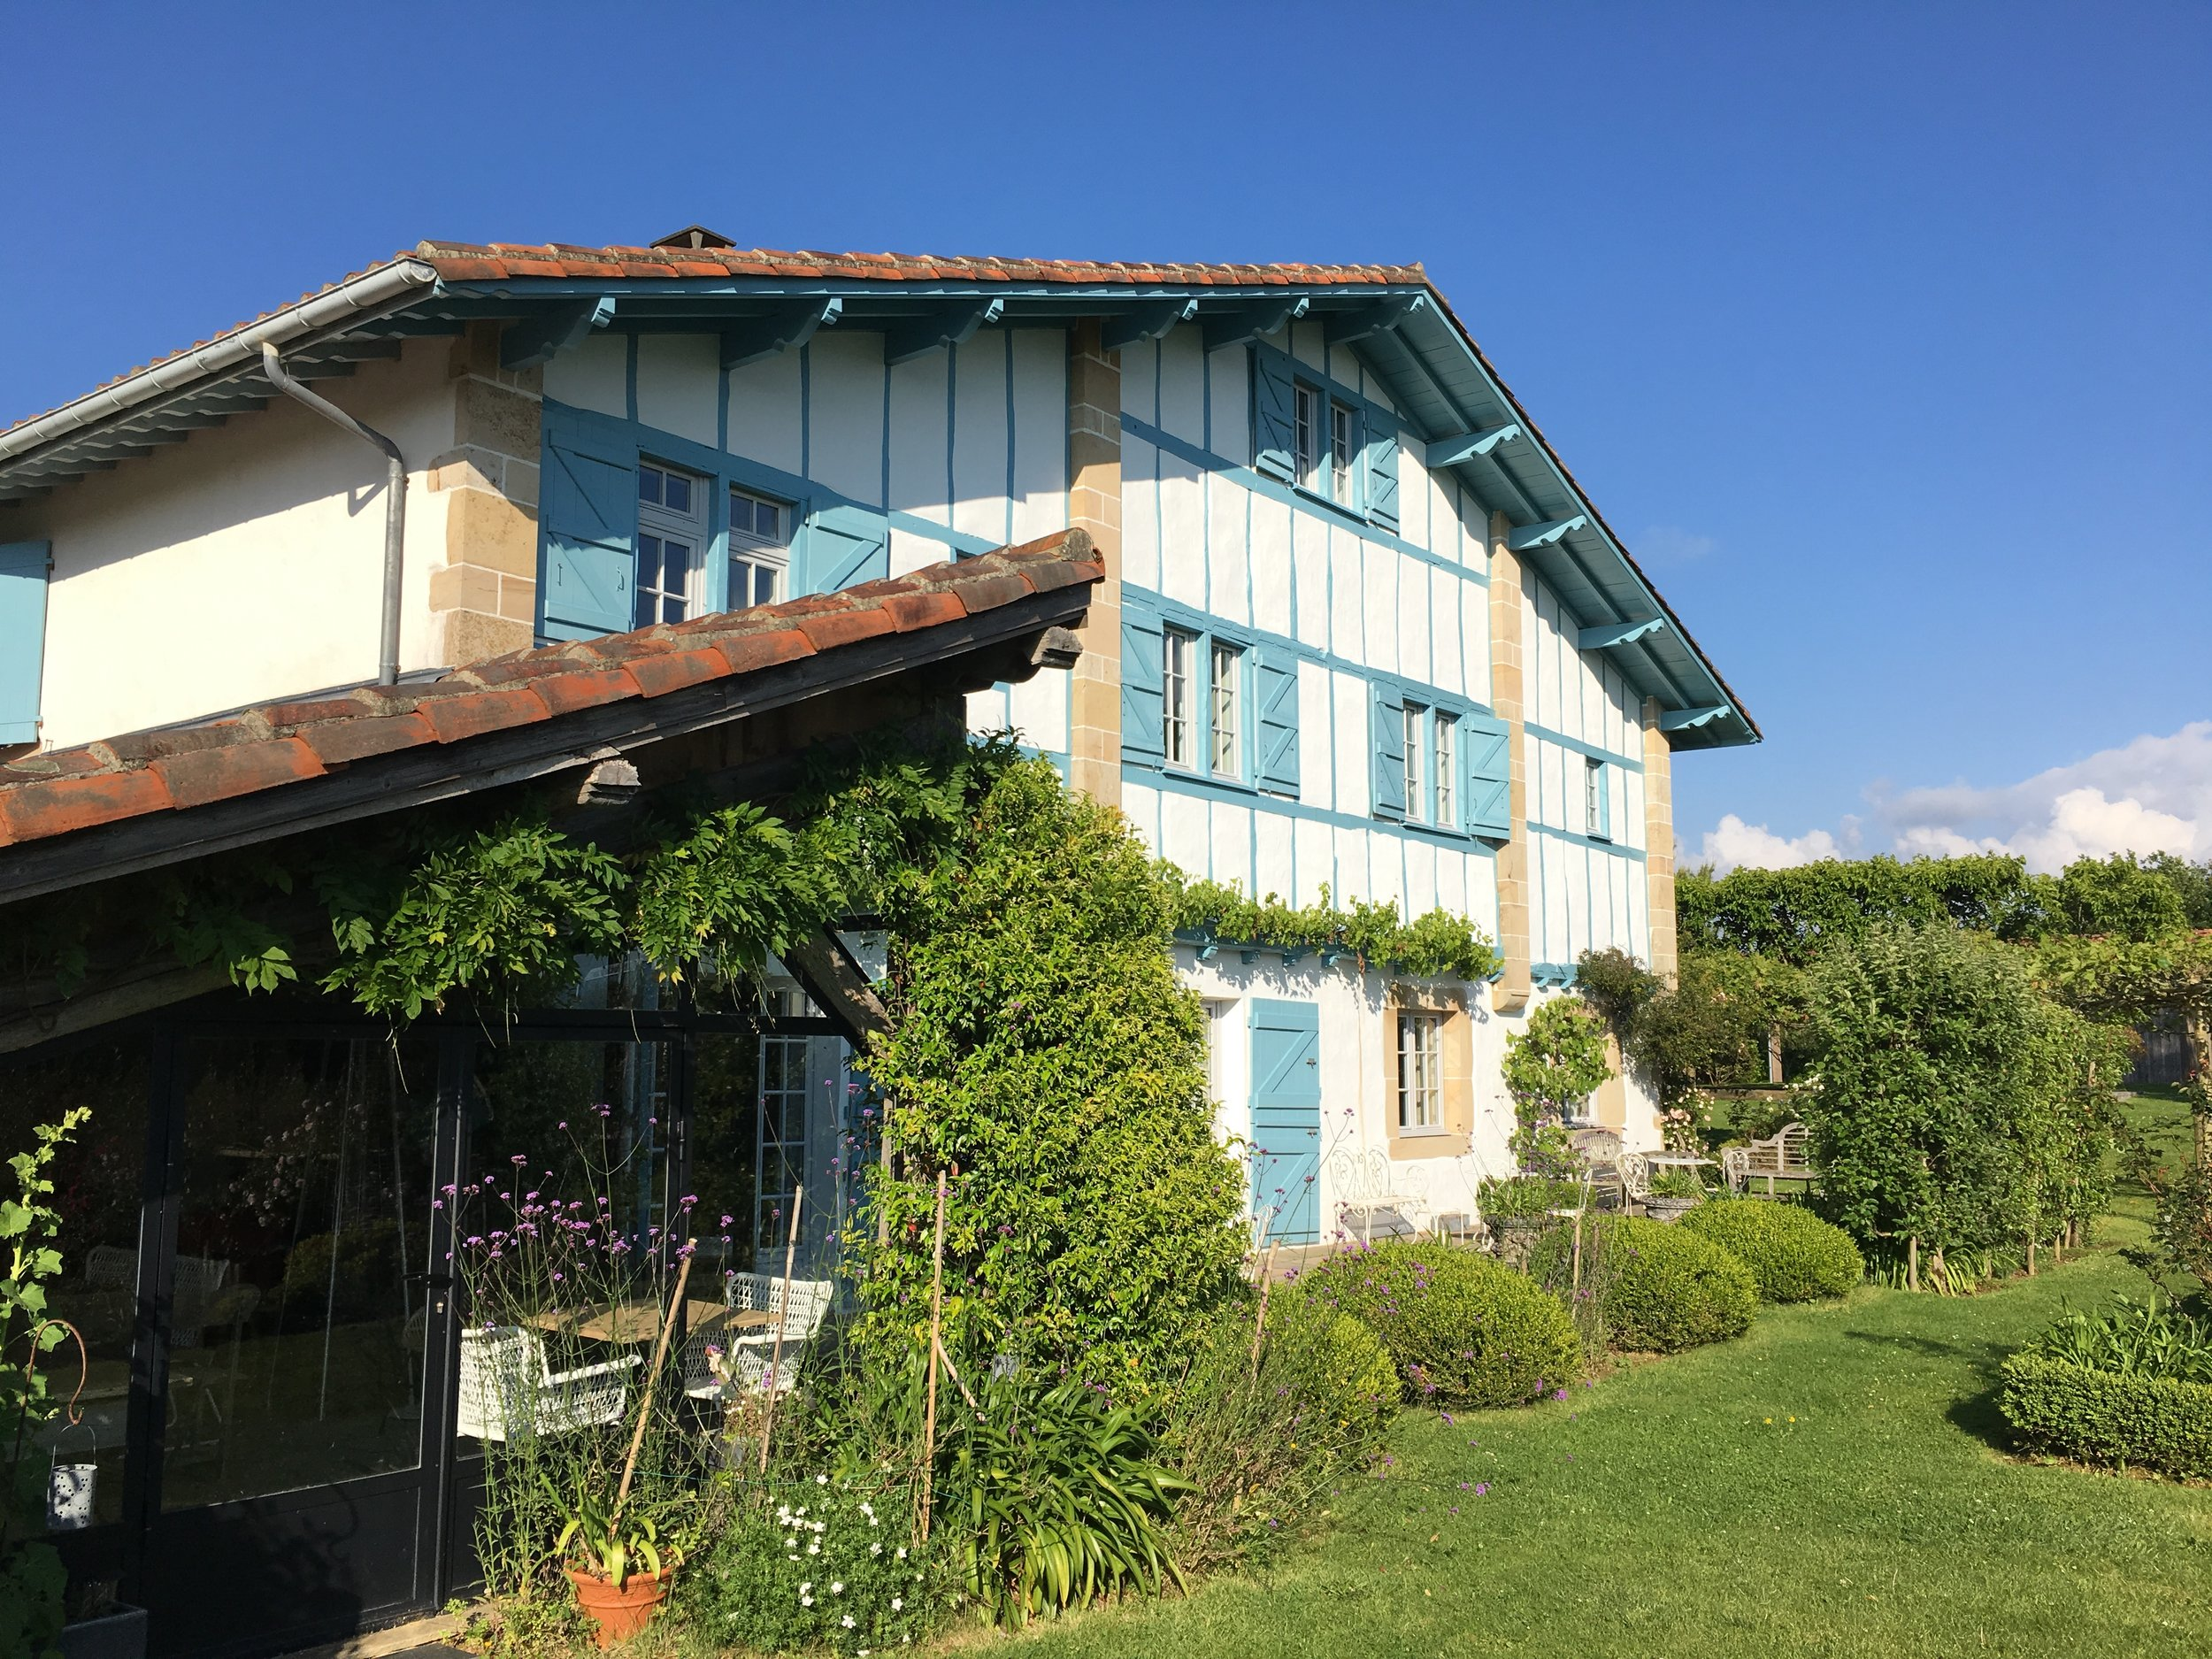 Authentic Accommodation Farm Basque Country